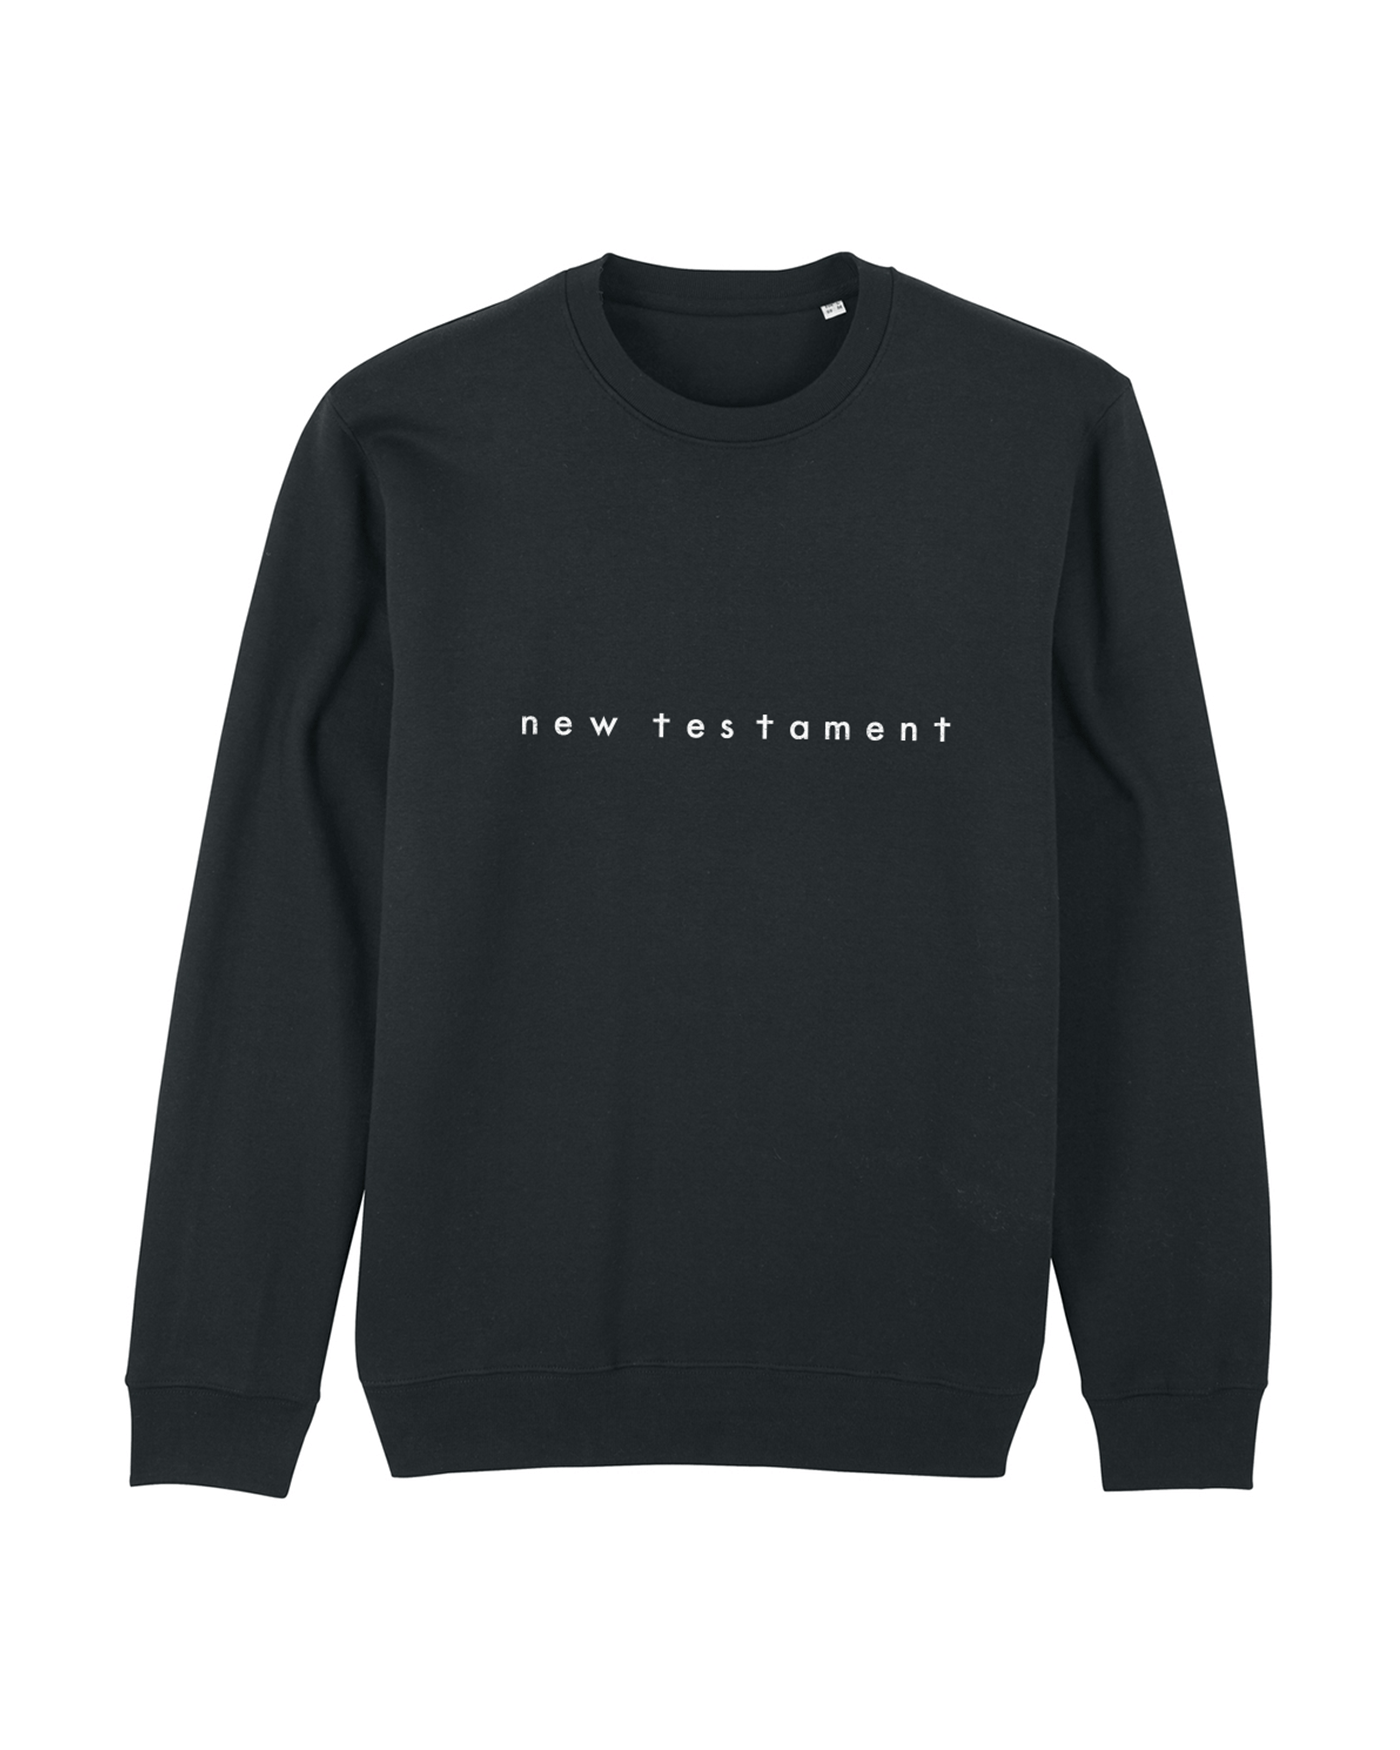 New Testament Sweater